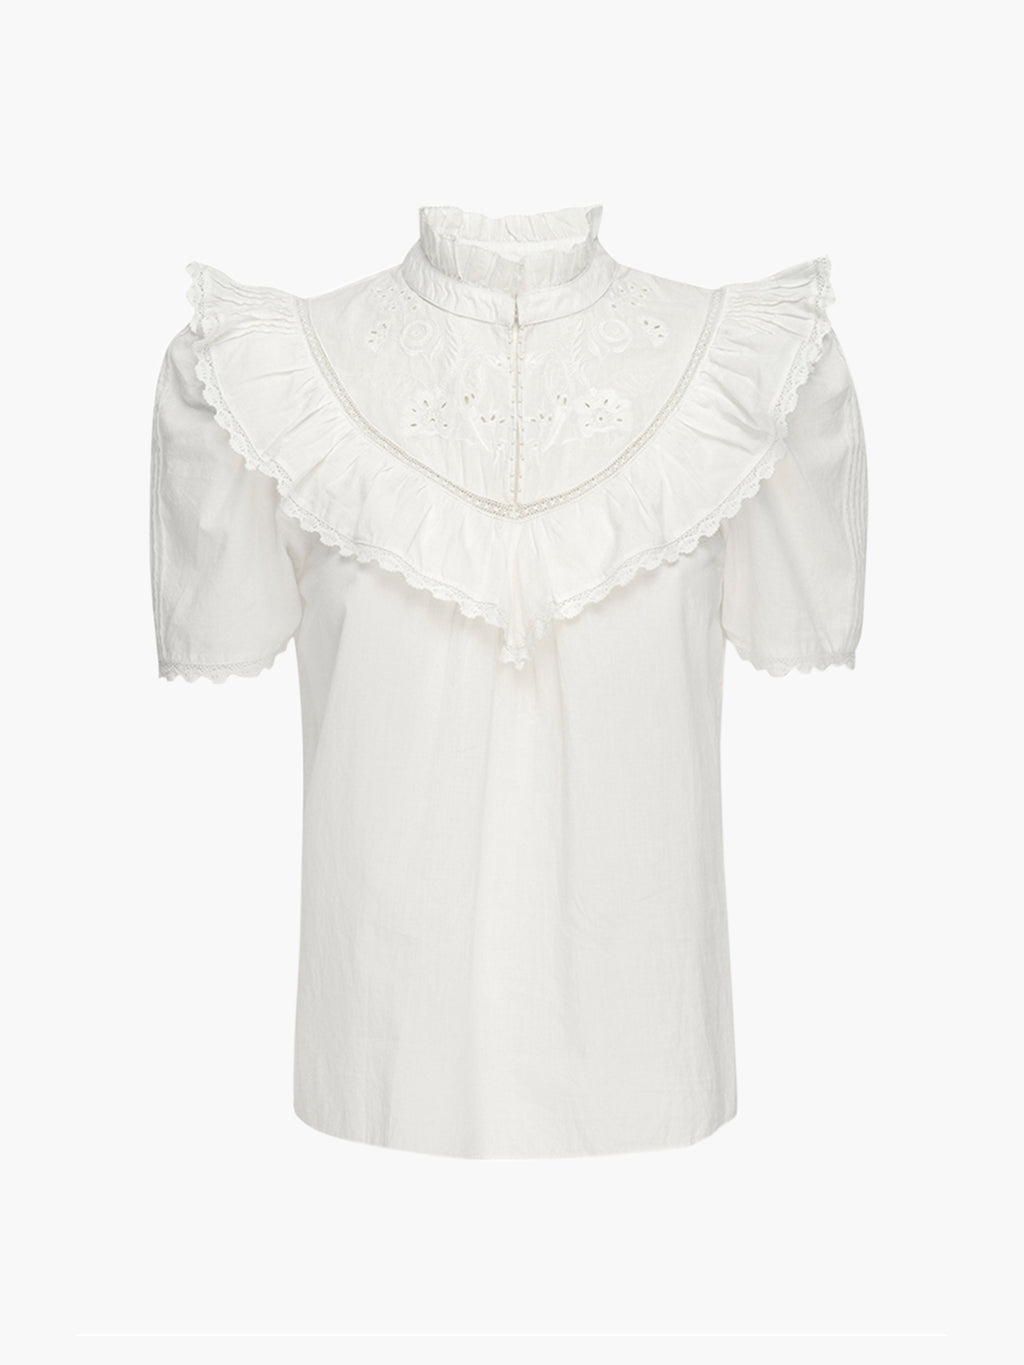 Nan Top | White